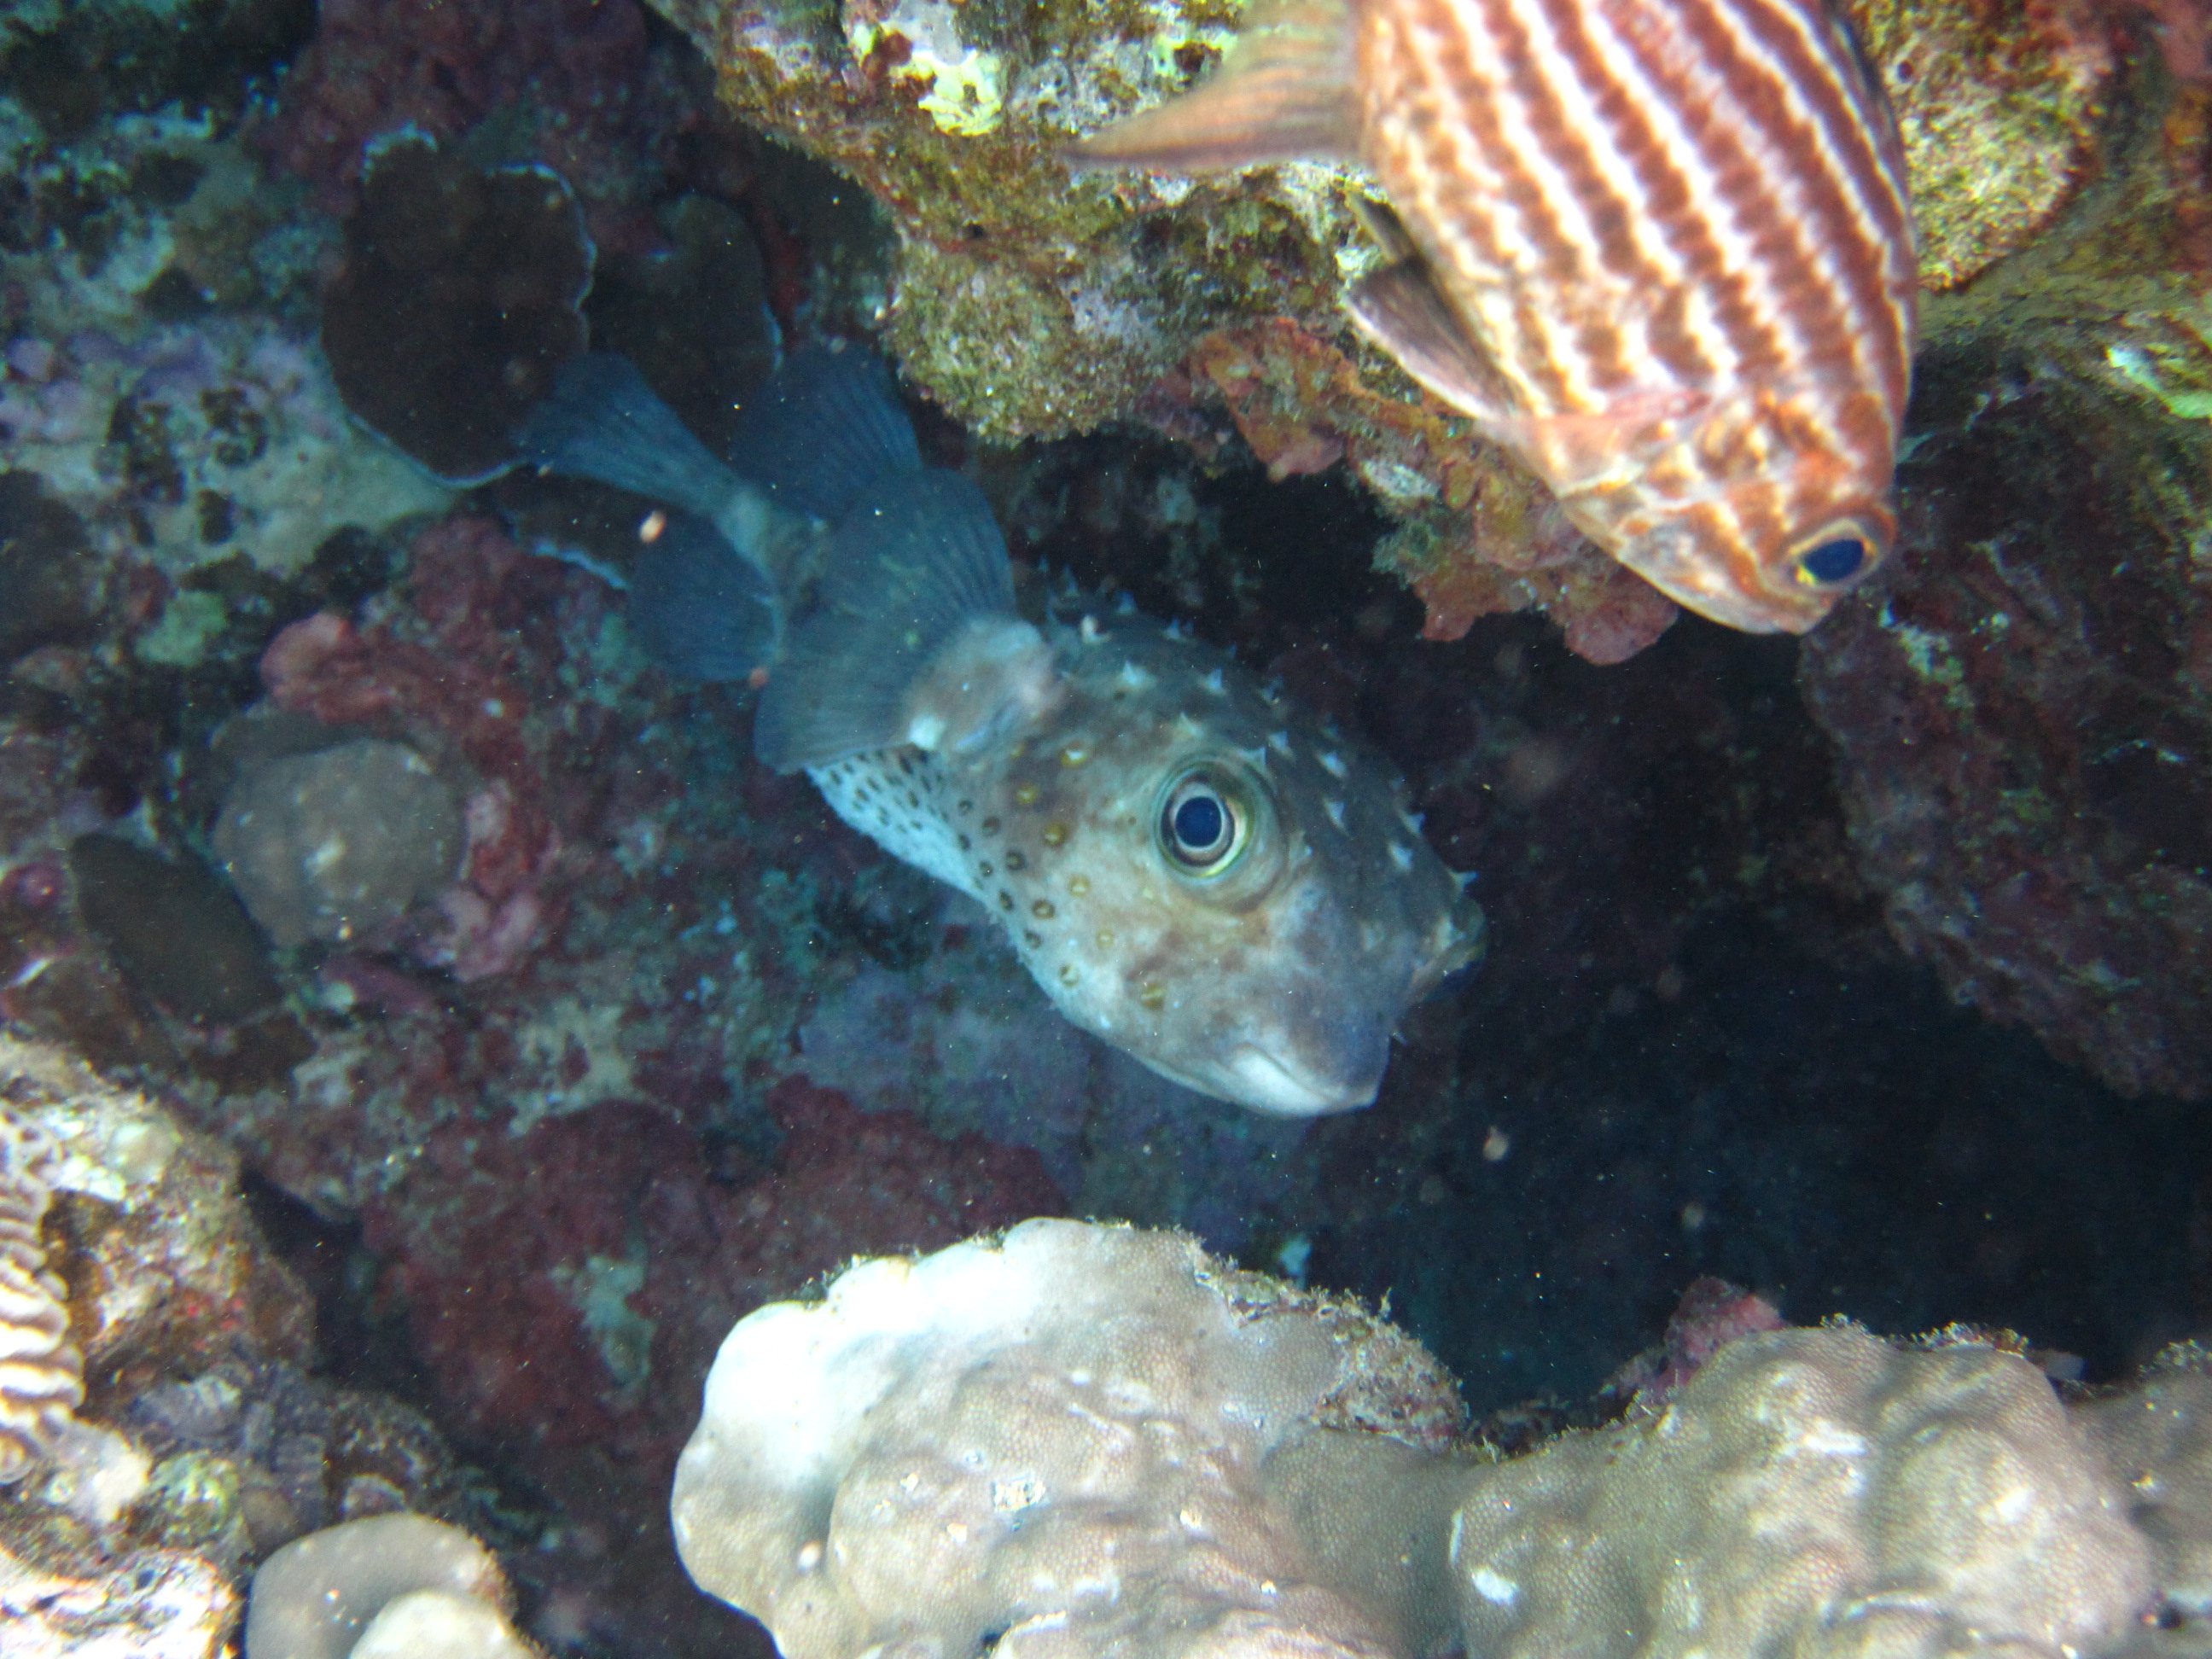 Cyclichthys spilostylus и , вверху —  Большезубый кардинал - Cheilodipterus macrodon - Large-toothed cardinalfish